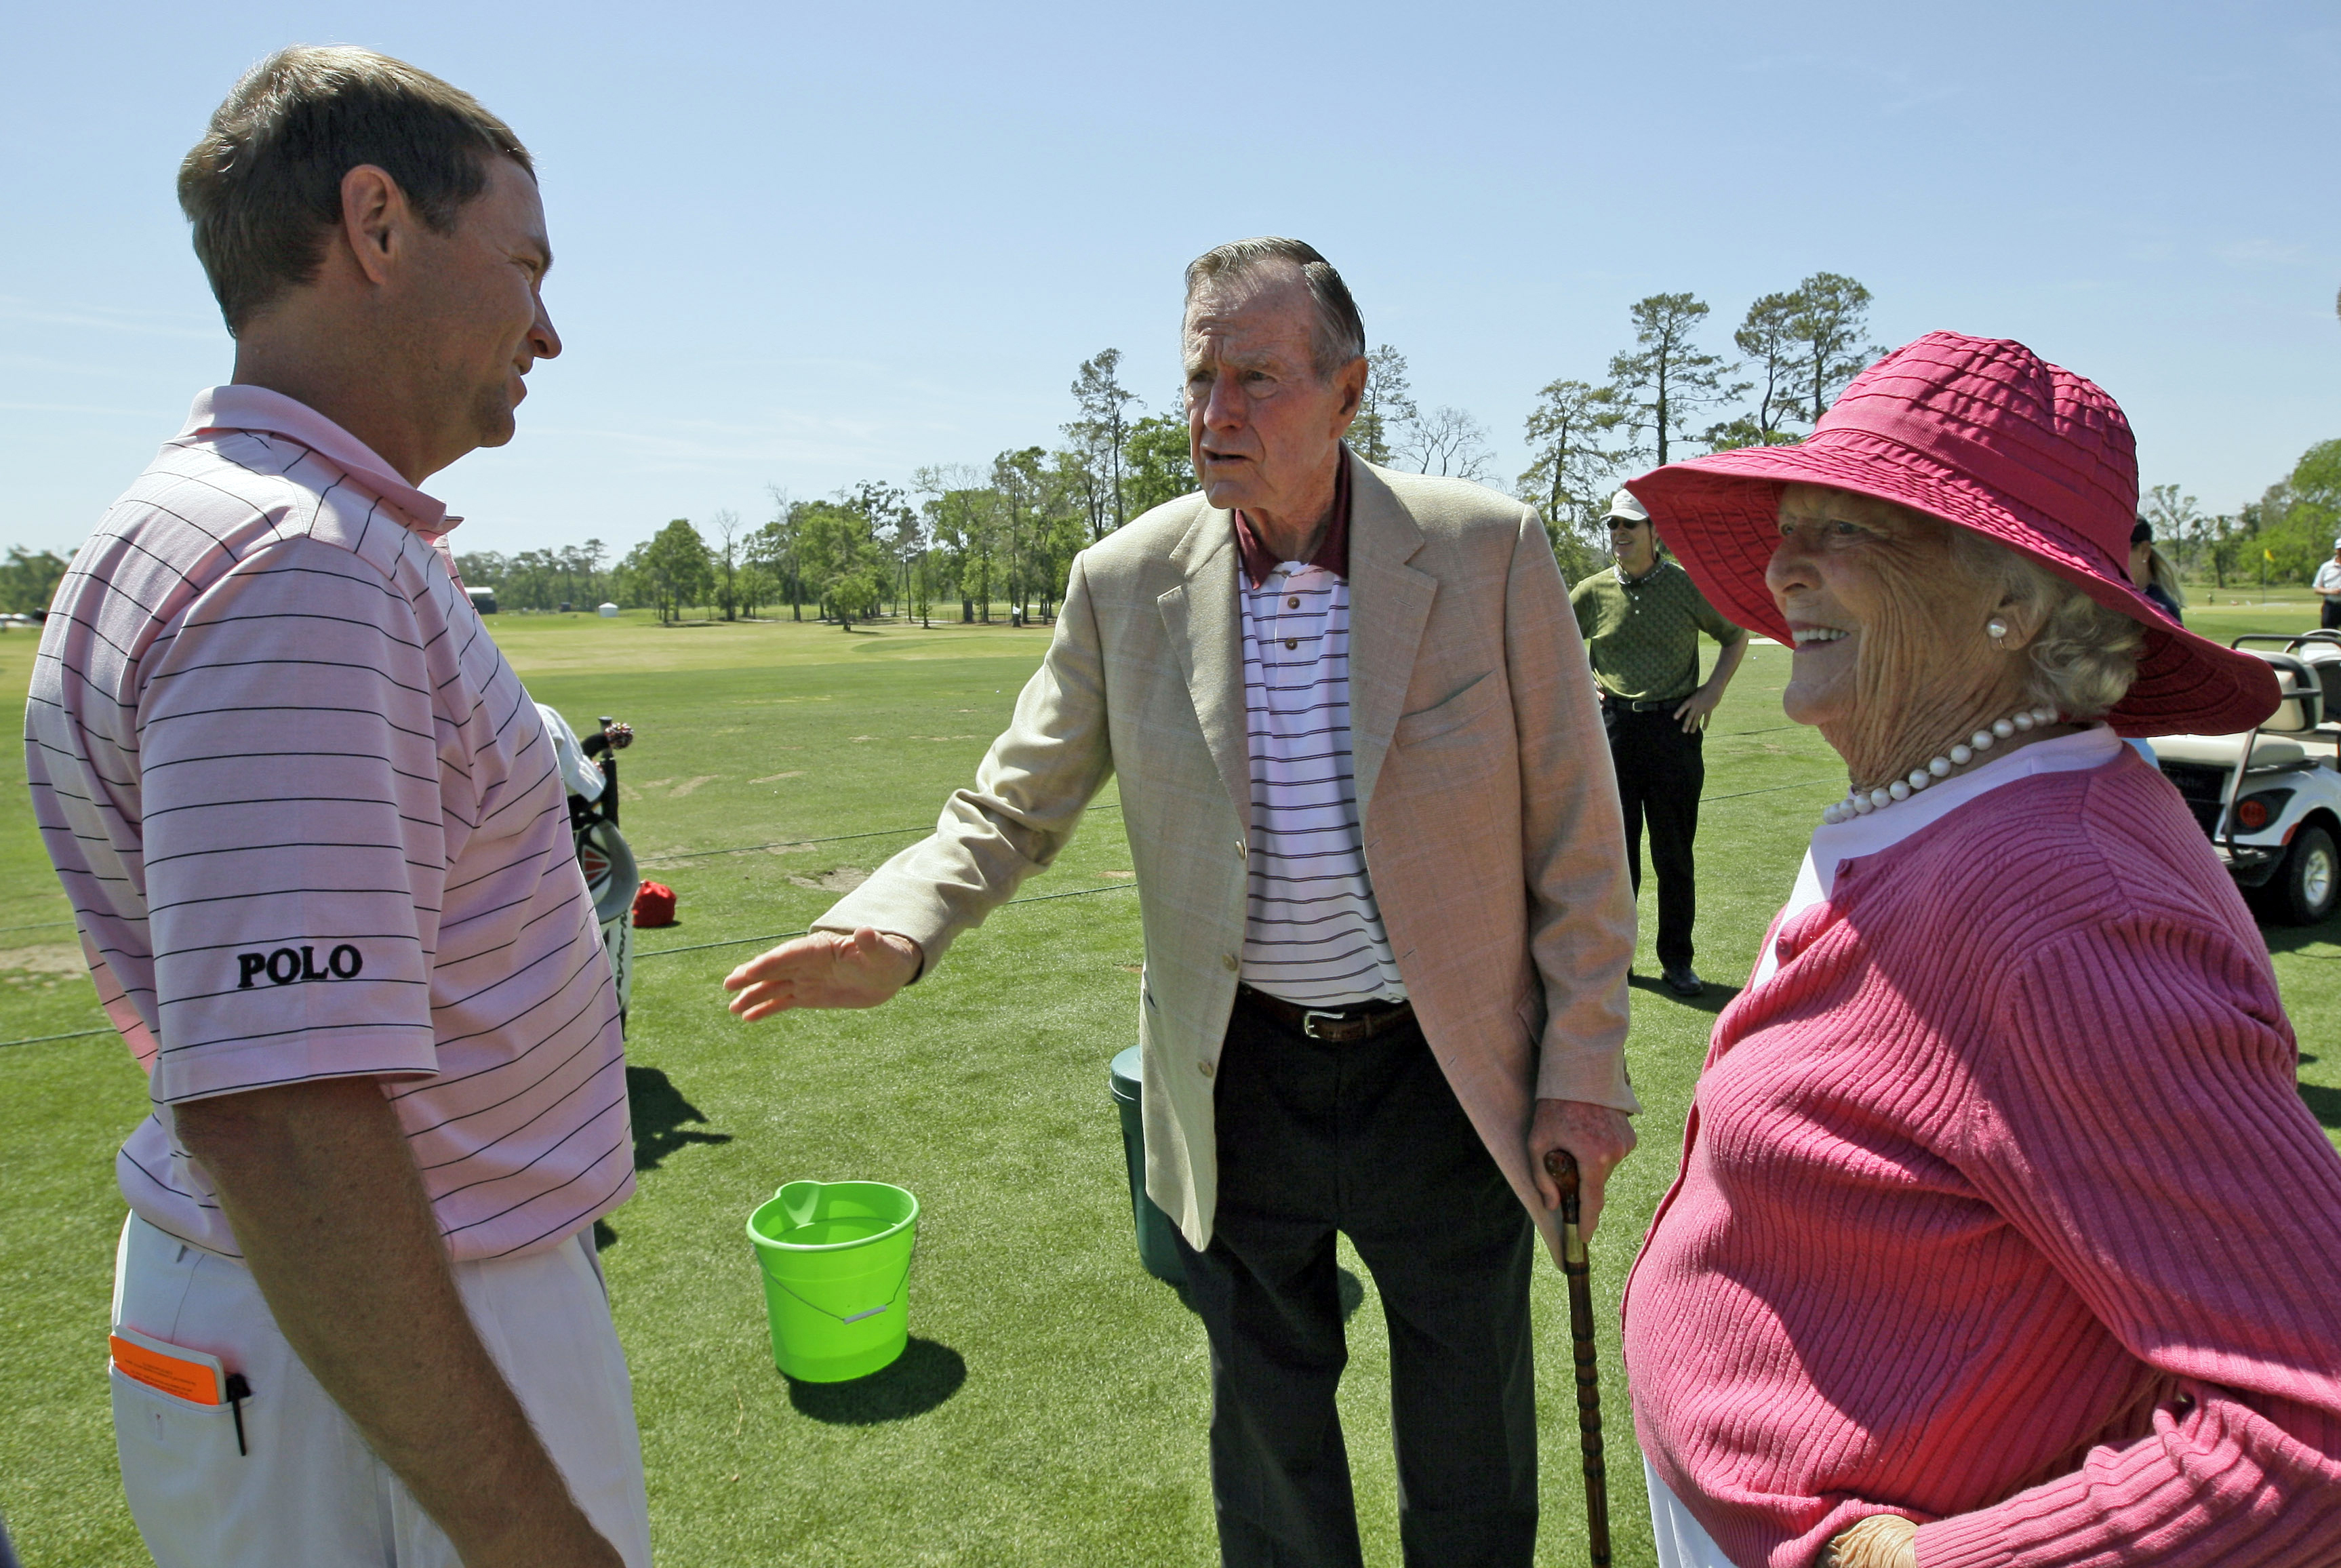 FILE - In this April 3, 2009, file photo, Former President George H.W. Bush, center, and his wife Barbara, right, talk with Davis Love III on the practice range during the first round of the Houston Open golf tournament in Humble, Texas. Love is among several players Bush used to invited to Maine for golf. Bush died Friday, Nov. 30, 2018. (AP Photo/David J. Phillip, File)